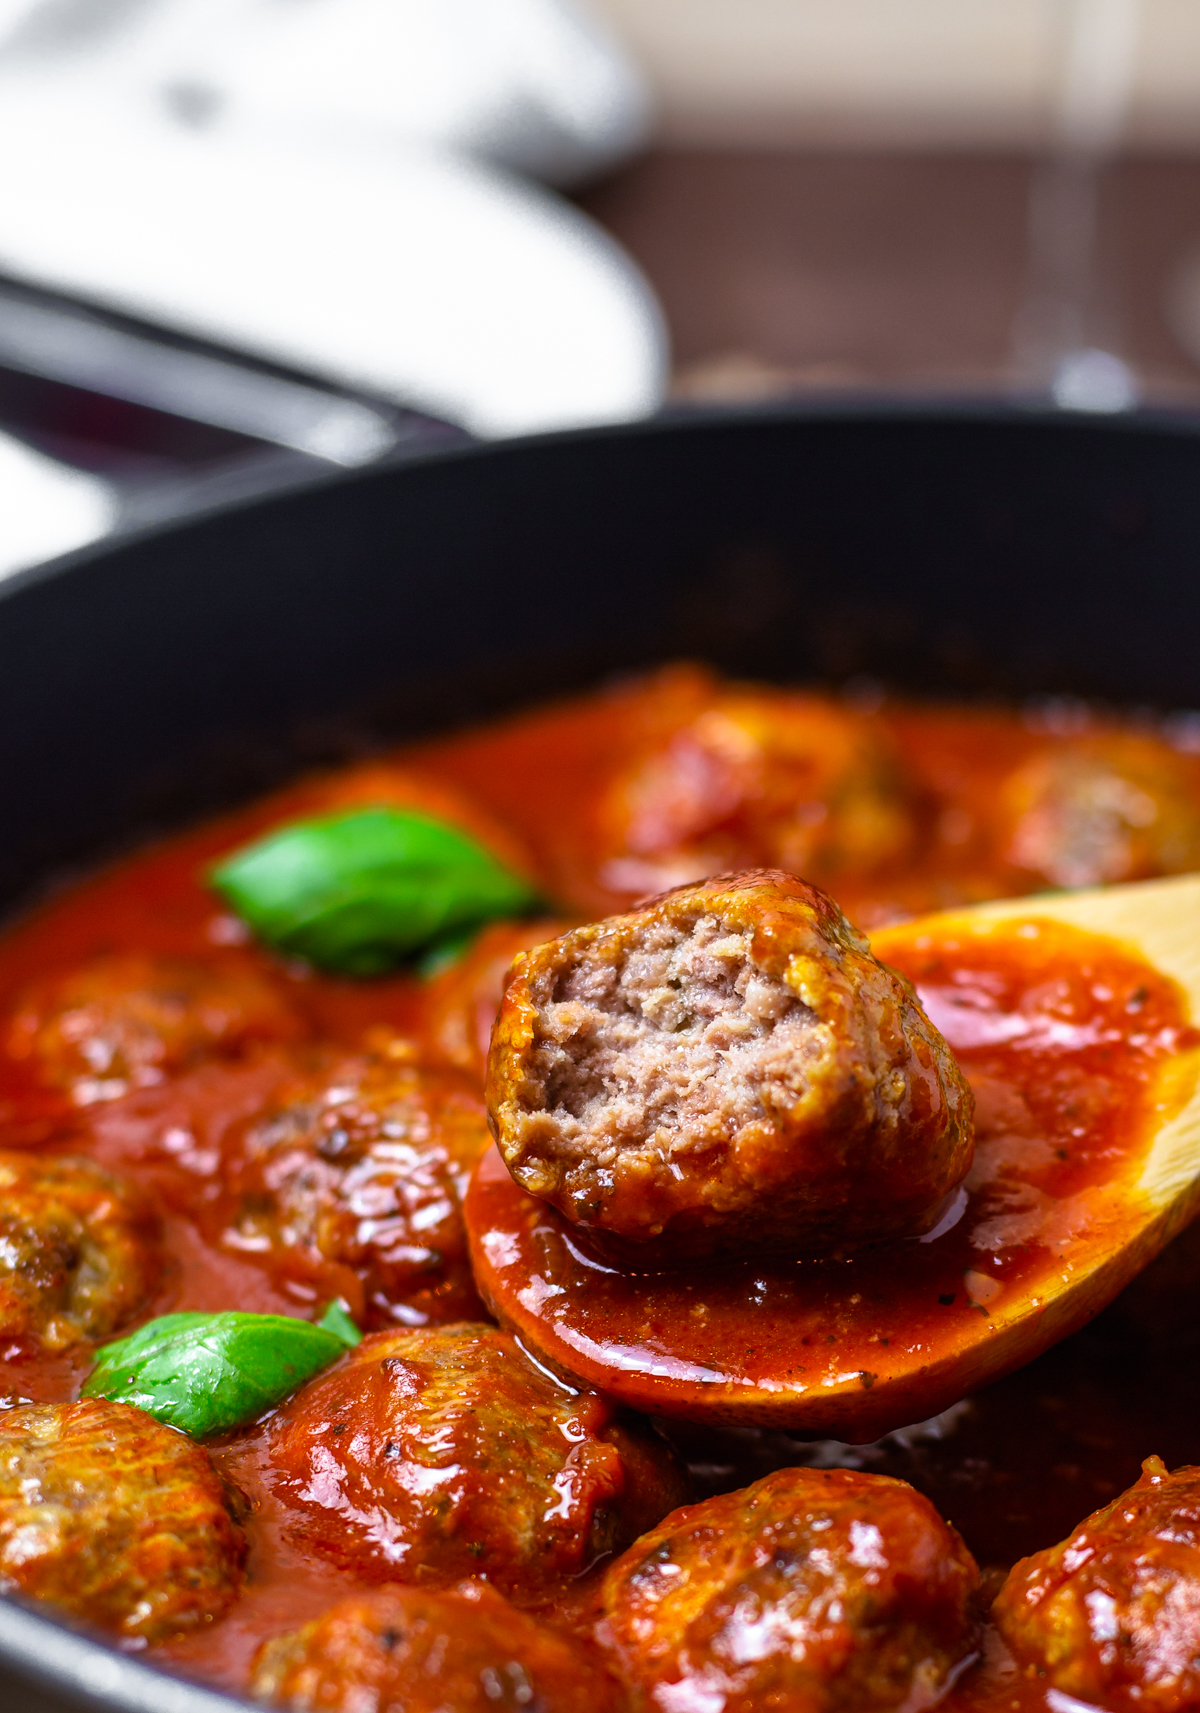 Spoon holding one Homemade Meatball with bite taken out of it